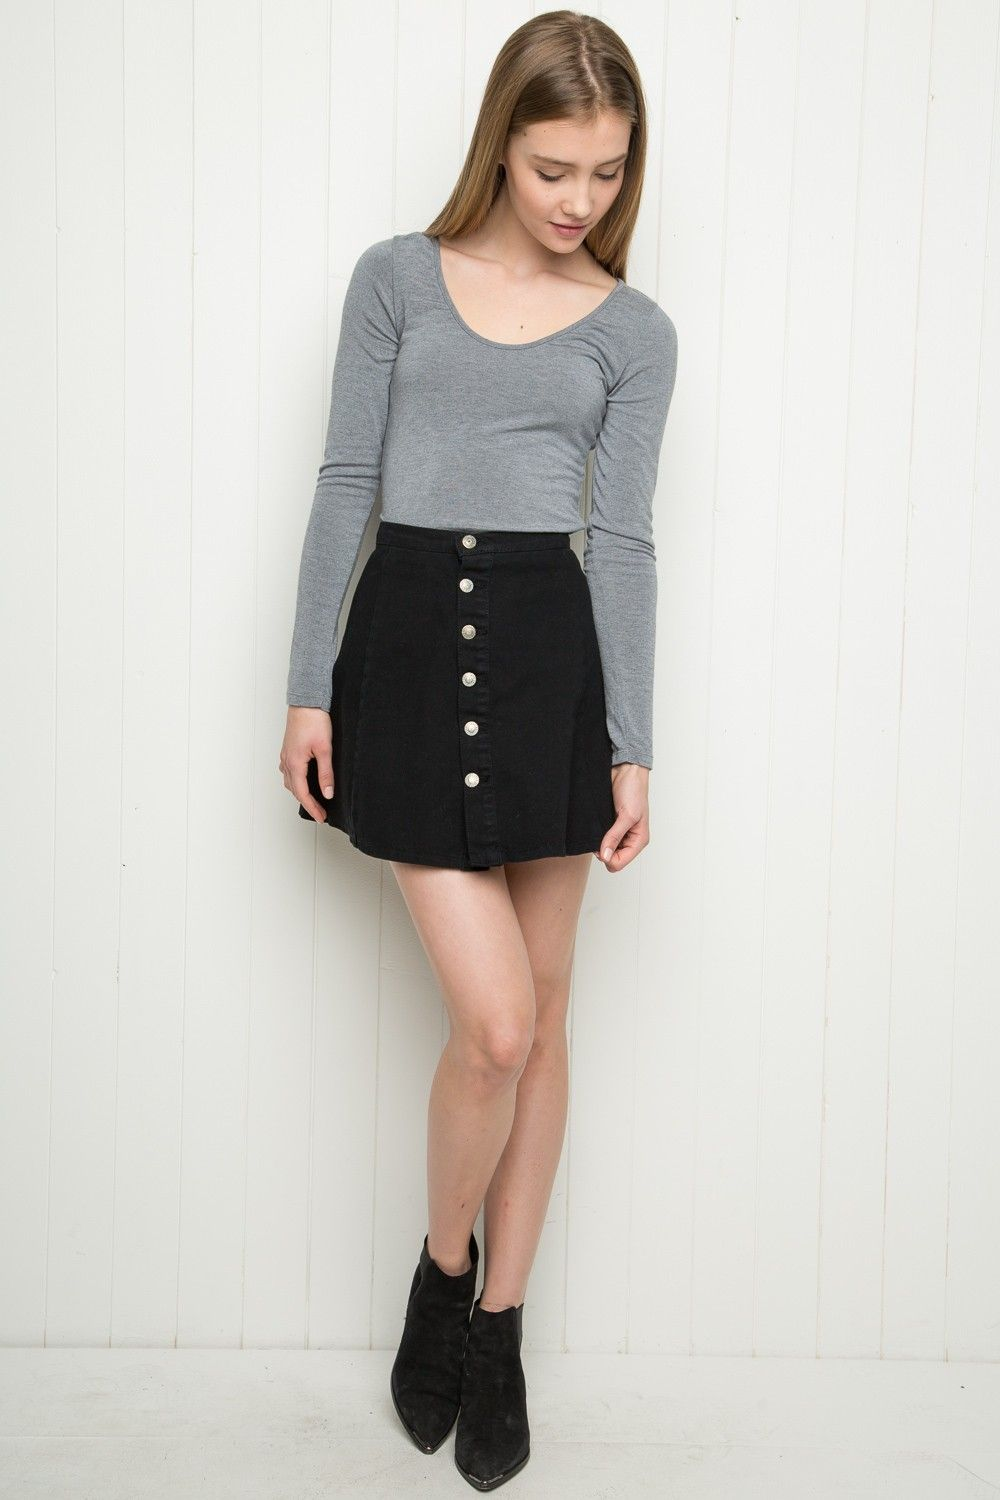 PETITE Black Denim Skirt | Black denim skirt, Black denim and ...